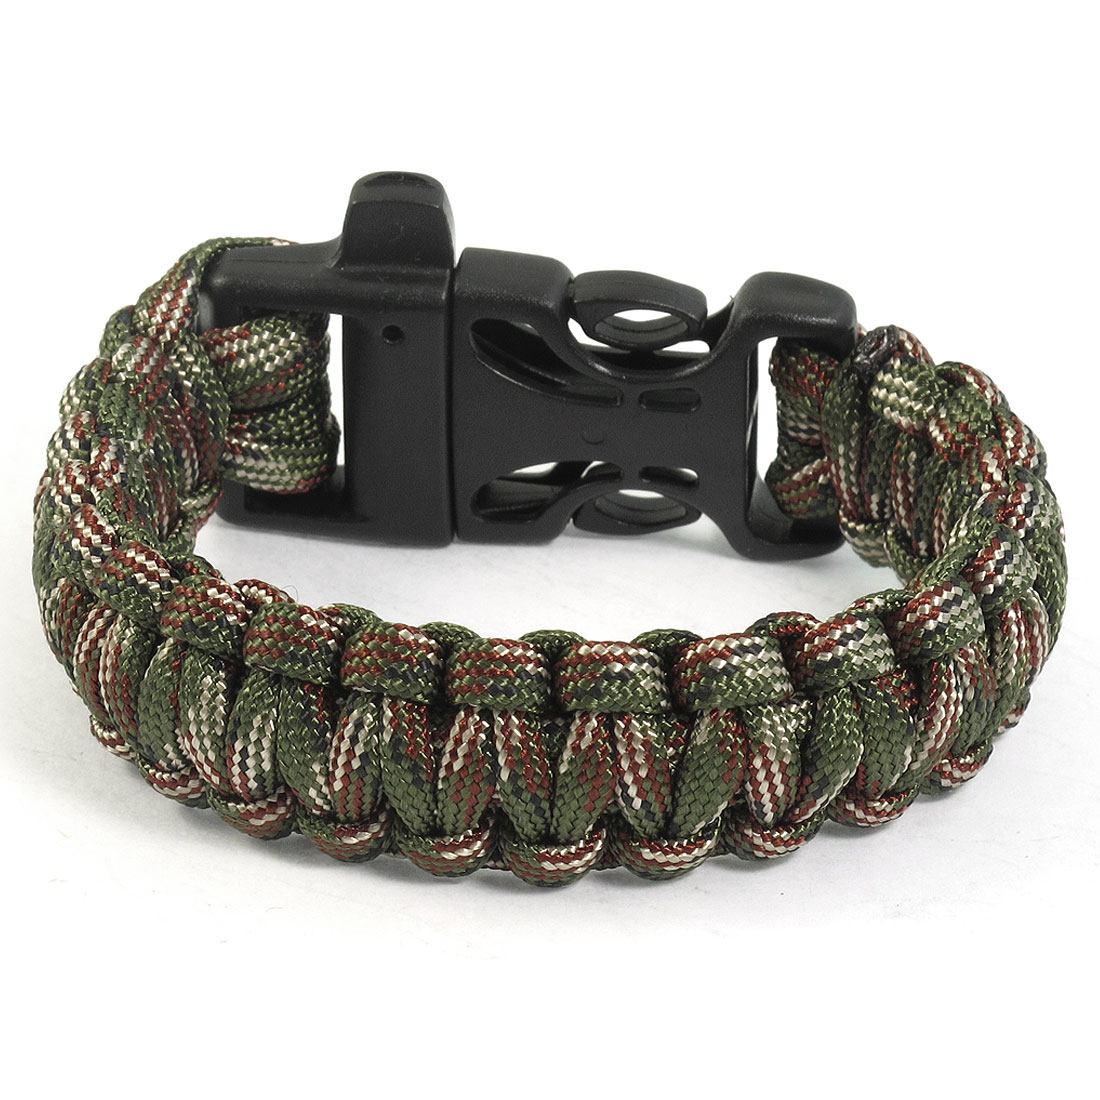 Practical Whistle Buckle Cobra Weave Nylon Assorted Color Survival Bracelet